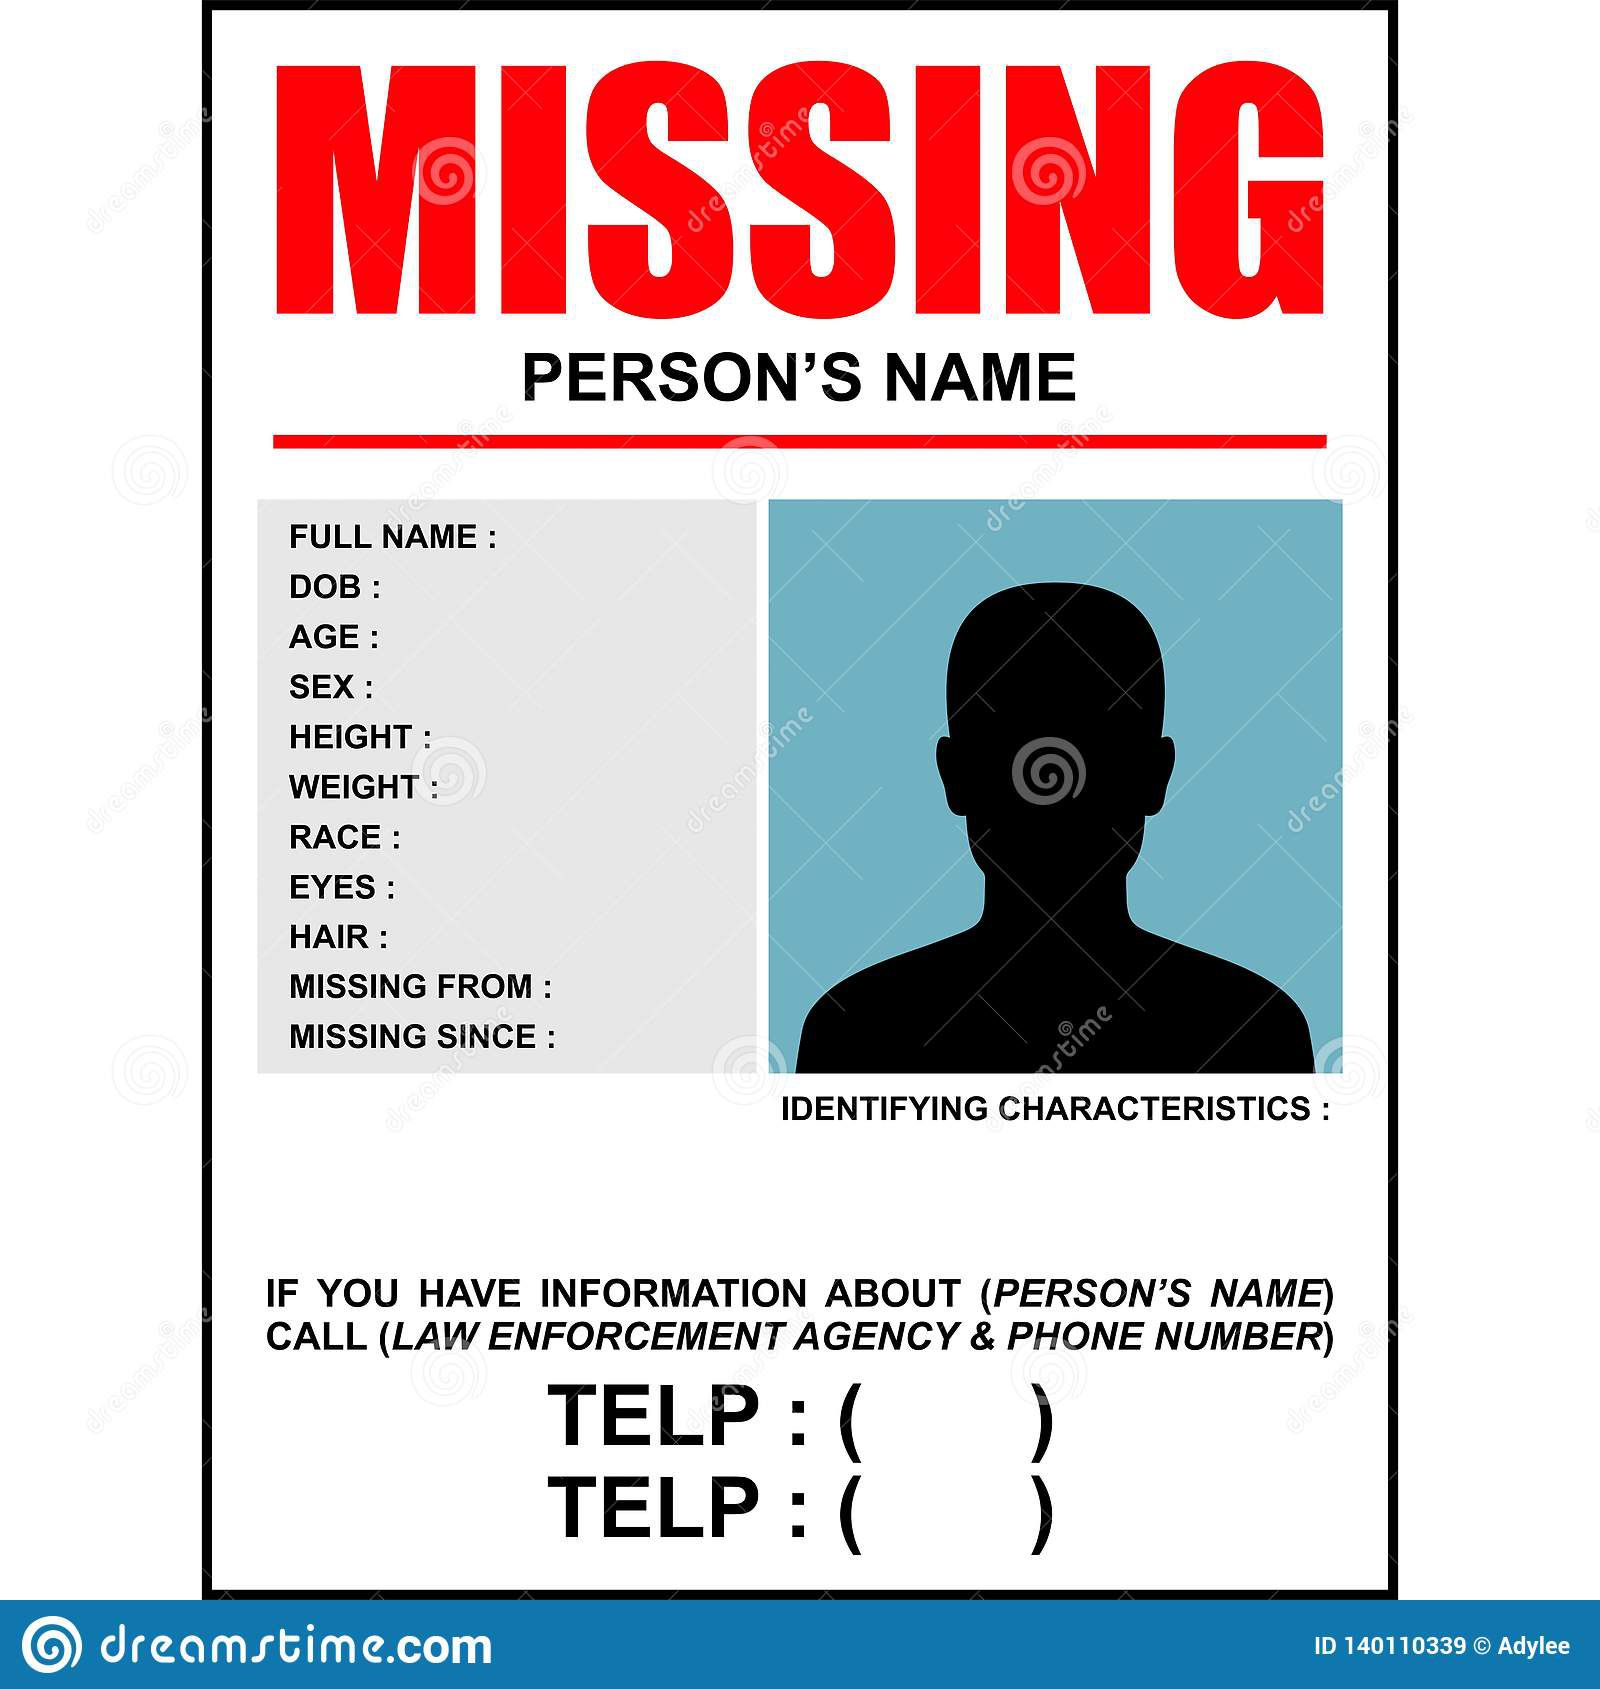 007 Dreaded Missing Person Poster Template Word High Resolution Full